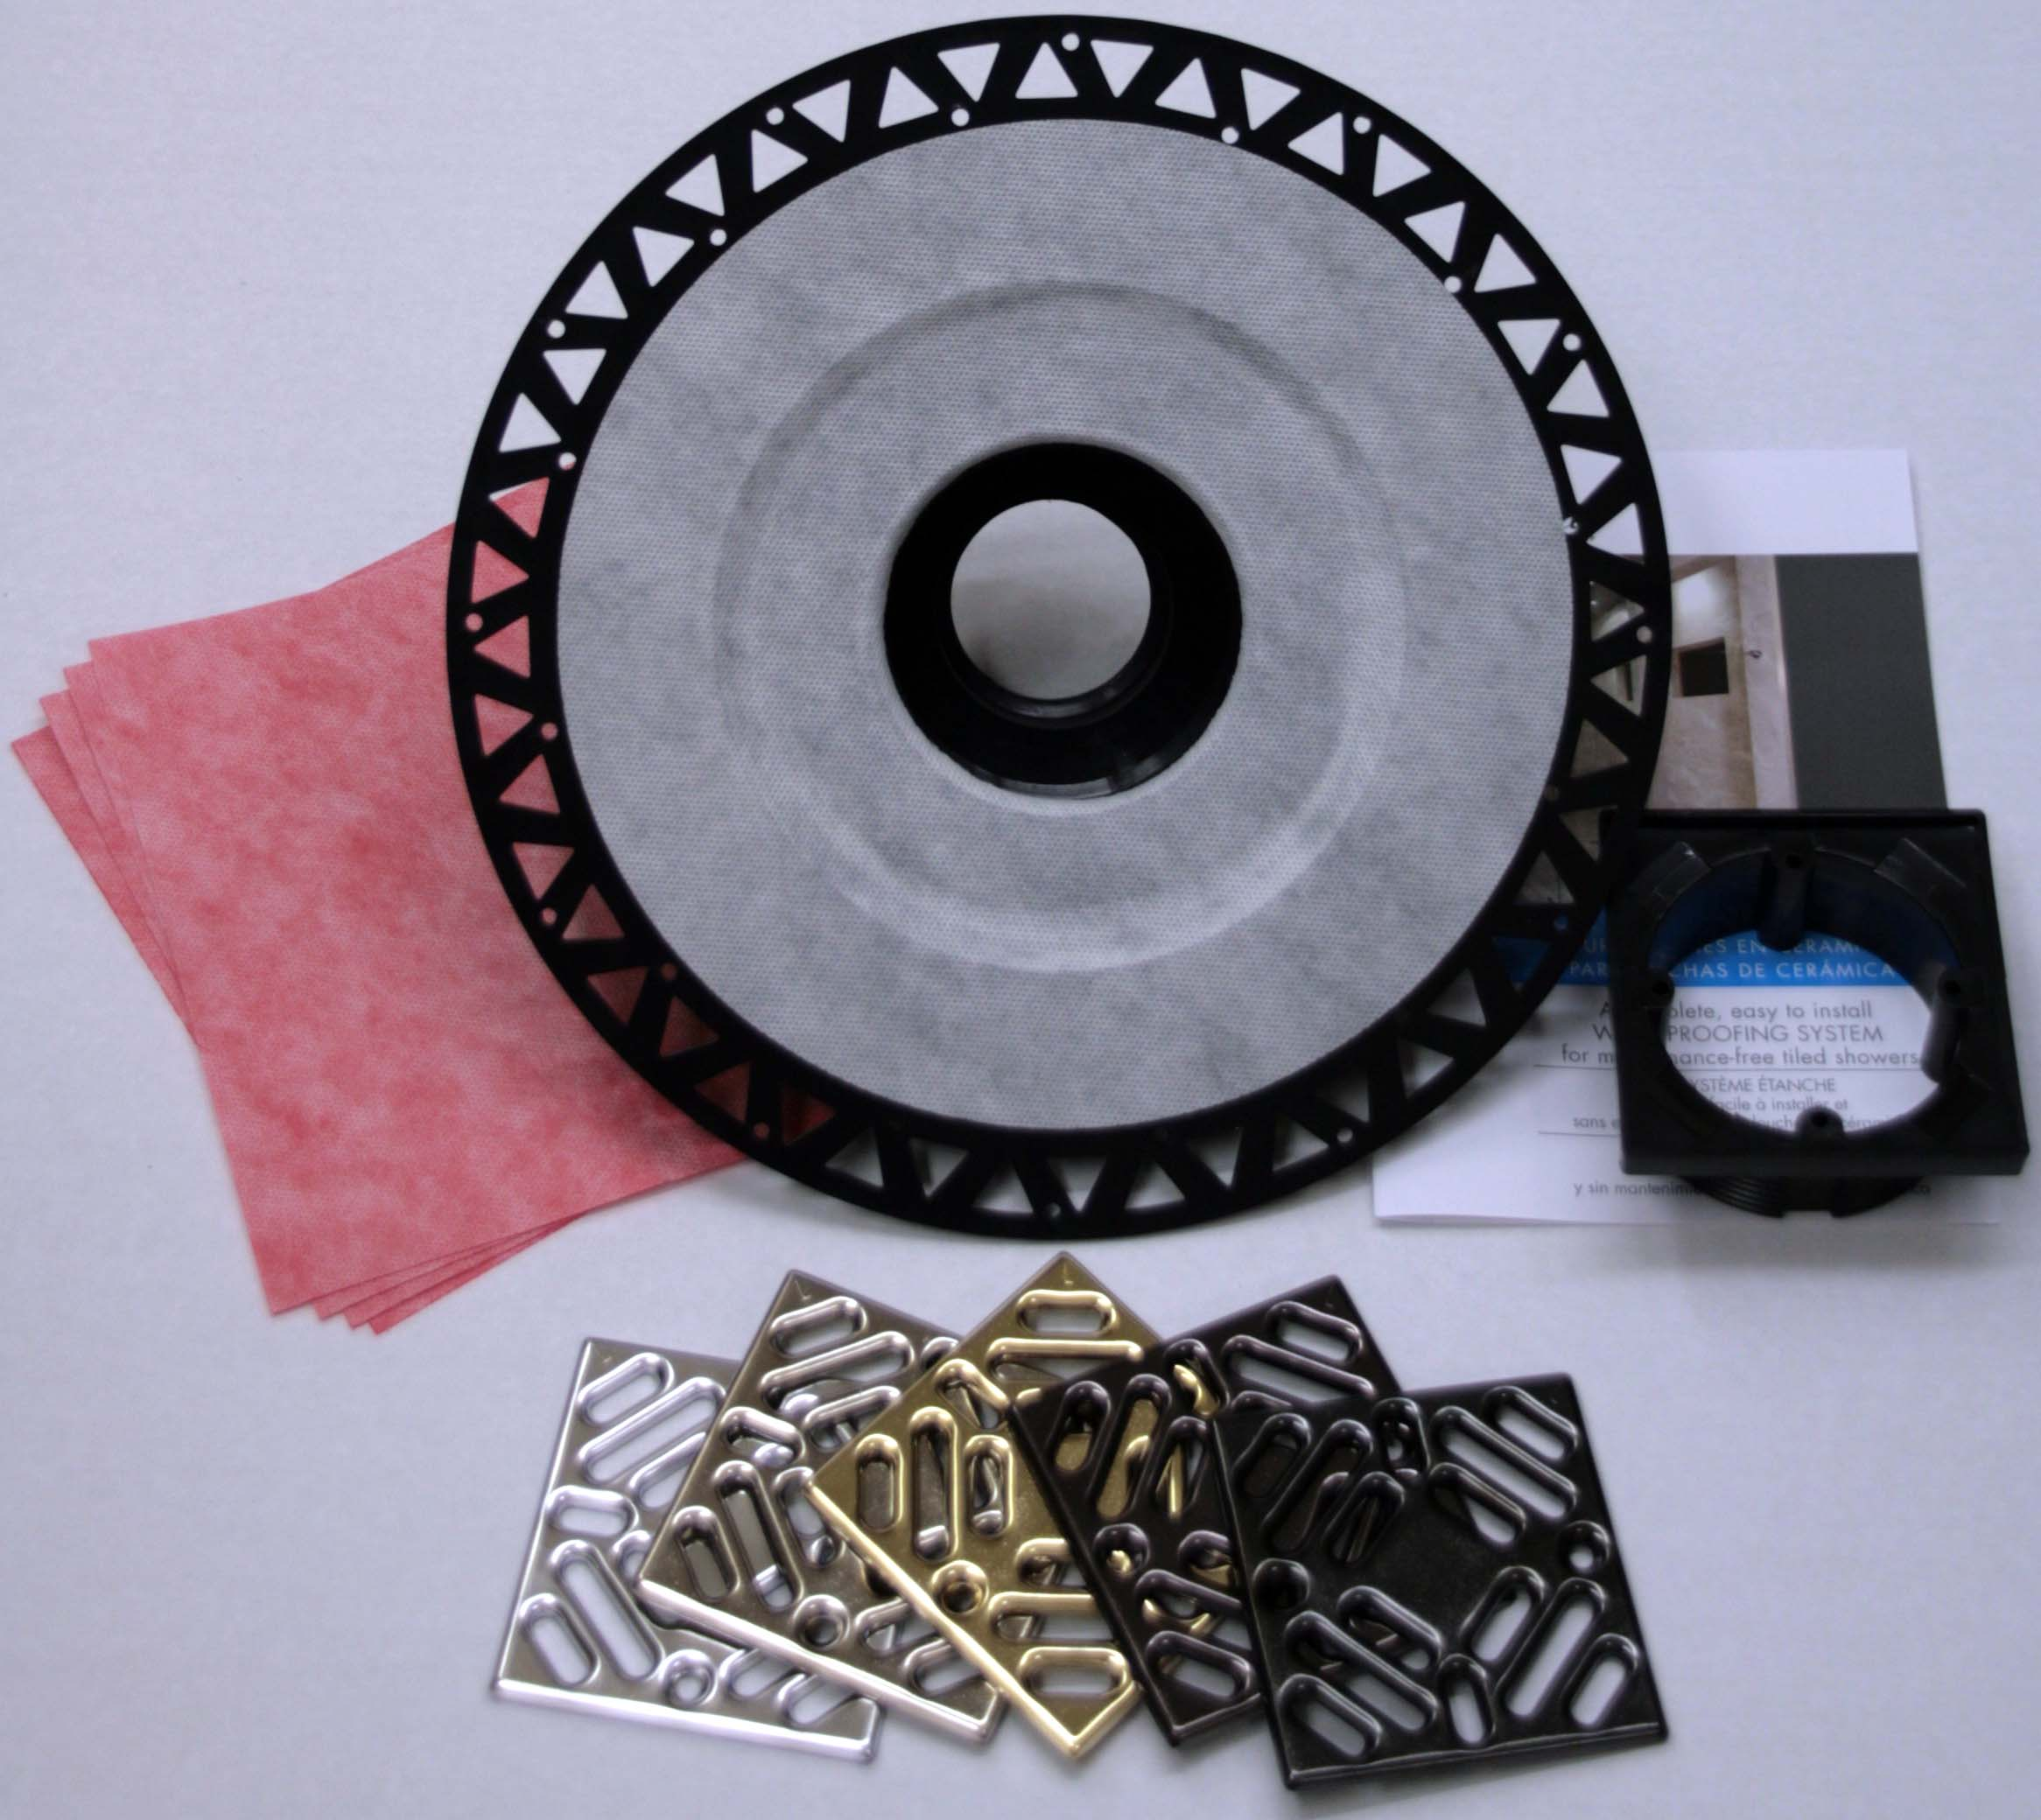 Pro Shower Drain Kit for Shower Systems ABS or PVC by Pro-Source Center